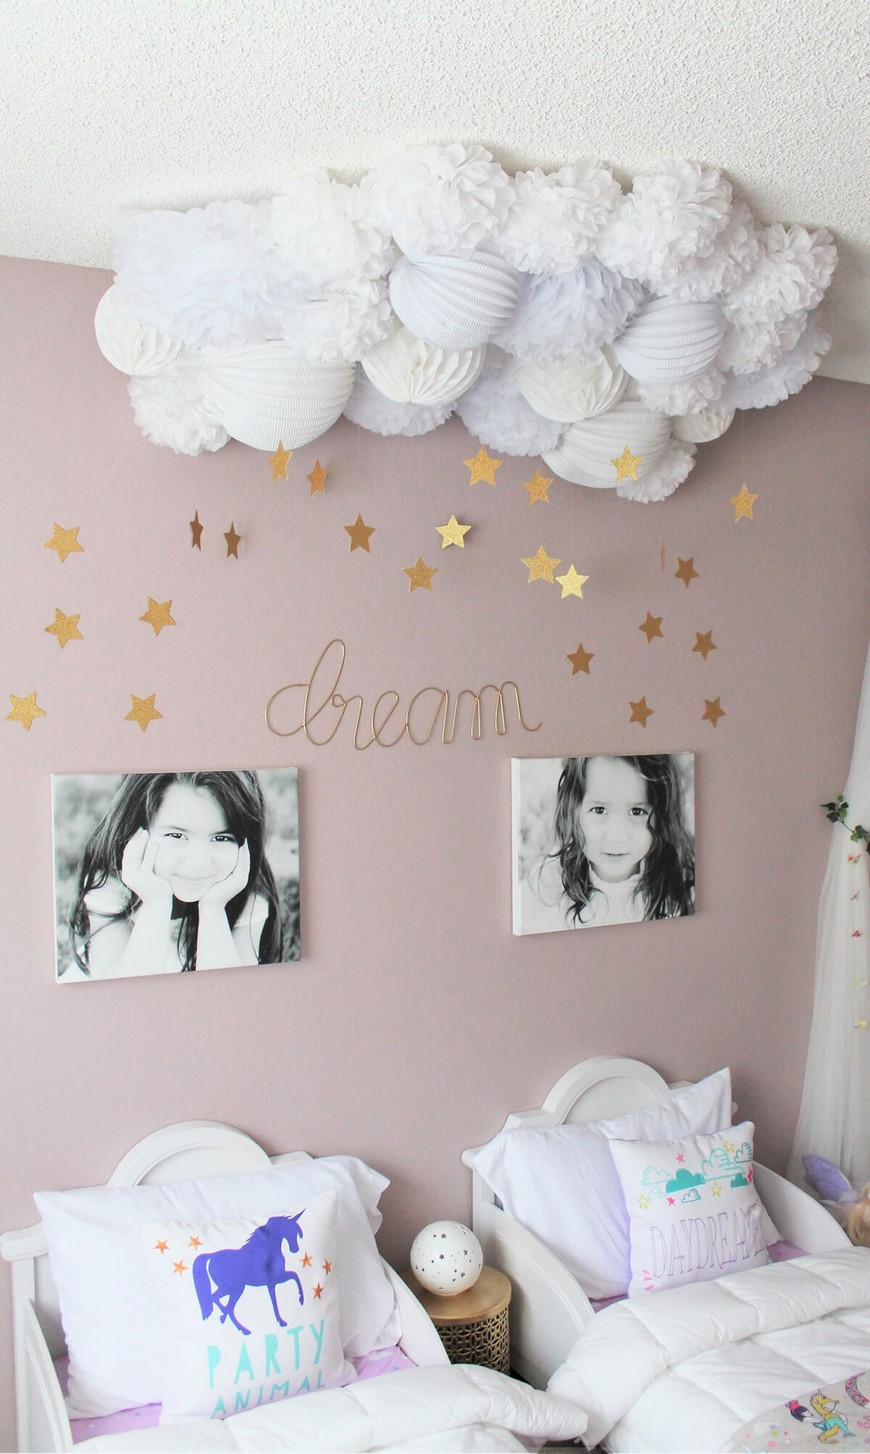 5 Decor Ideas for Kids You'll Absolutely Love! 5 decor ideas 5 Decor Ideas for Kids You'll Absolutely Love! 5 Decor Ideas for Kids Youll Absolutely Love 3